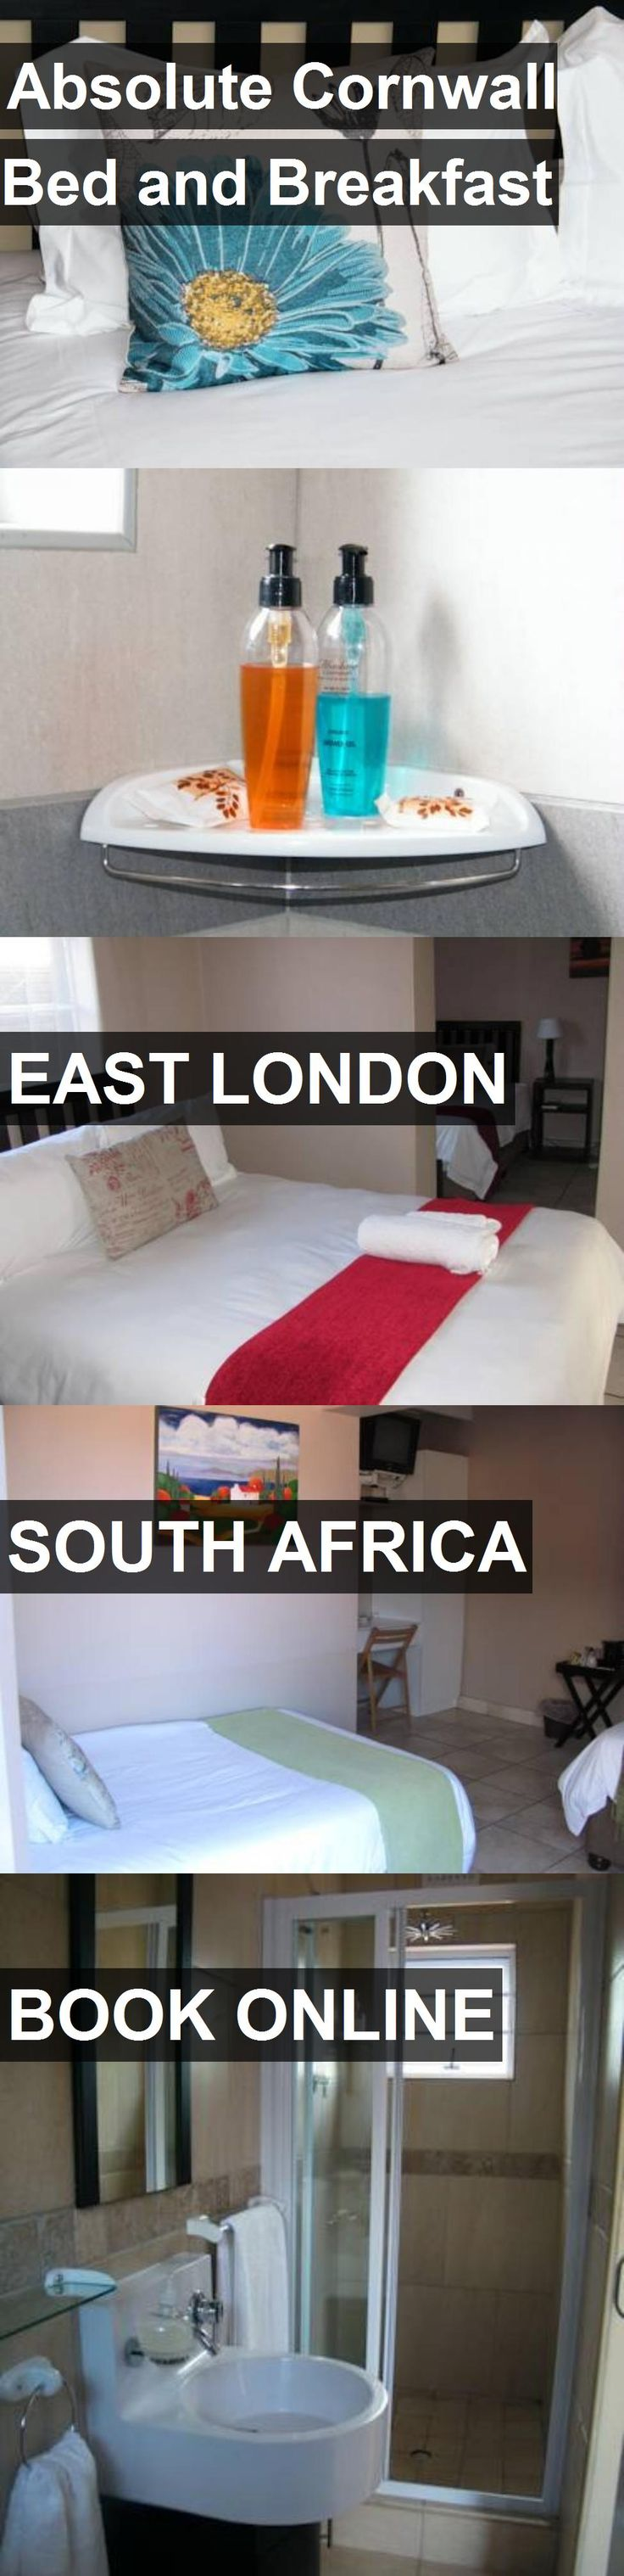 Hotel Absolute Cornwall Bed and Breakfast in East London, South Africa. For more information, photos, reviews and best prices please follow the link. #SouthAfrica #EastLondon #travel #vacation #hotel